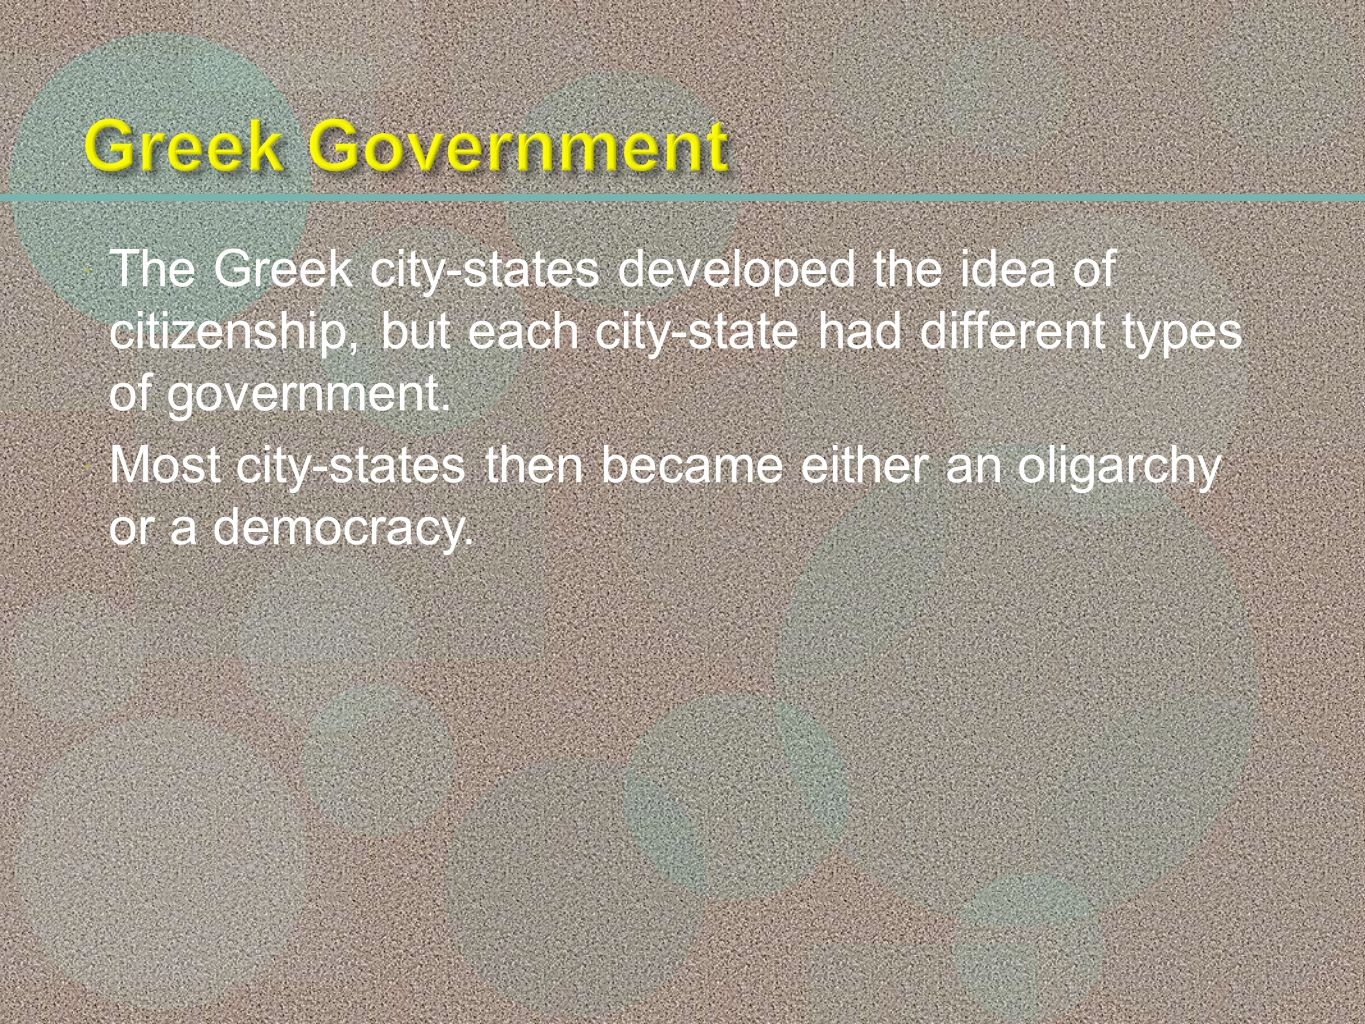 an analysis of the two types of government in greece This analysis was later shown to  the european central bank also provided support to greece in two  the tsipras government wanted three types of.